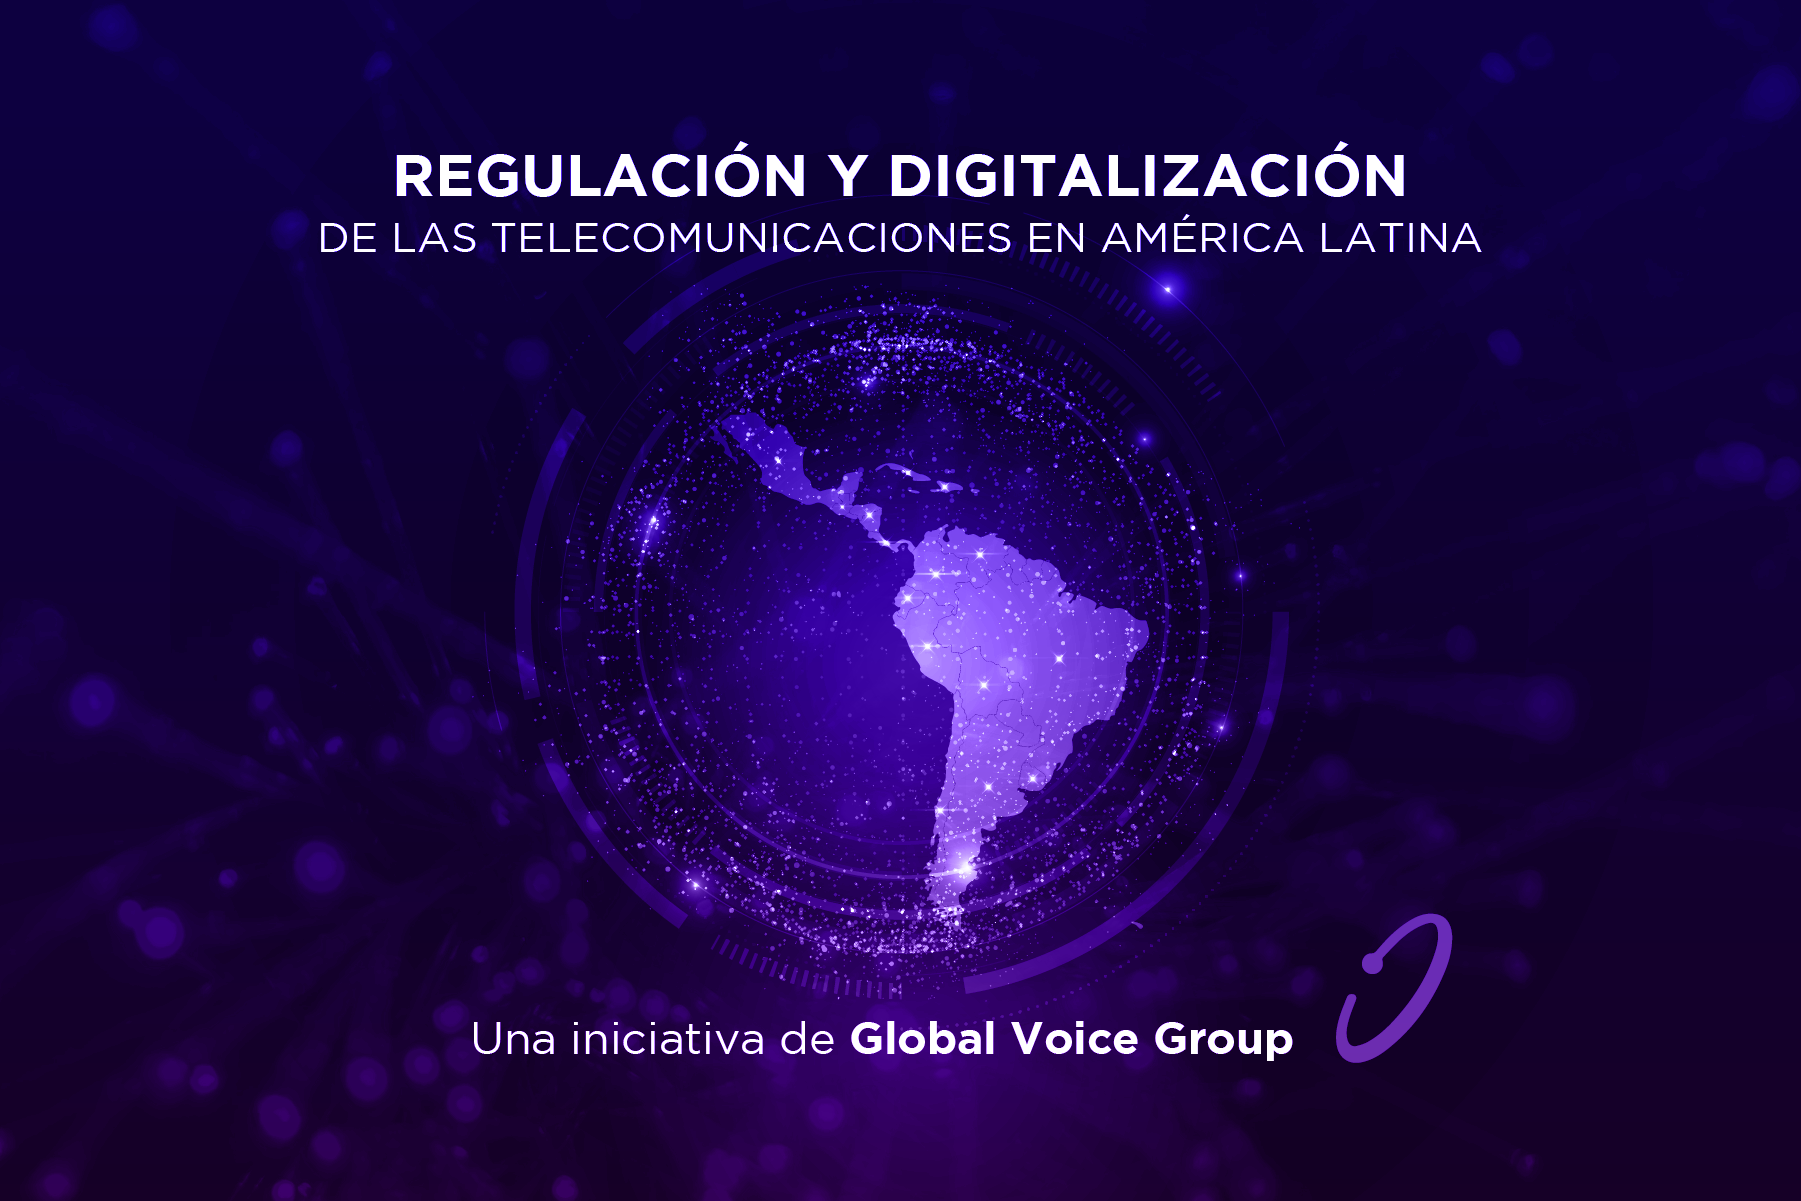 Regulation And Digitization Of The Telecommunications In Latin America